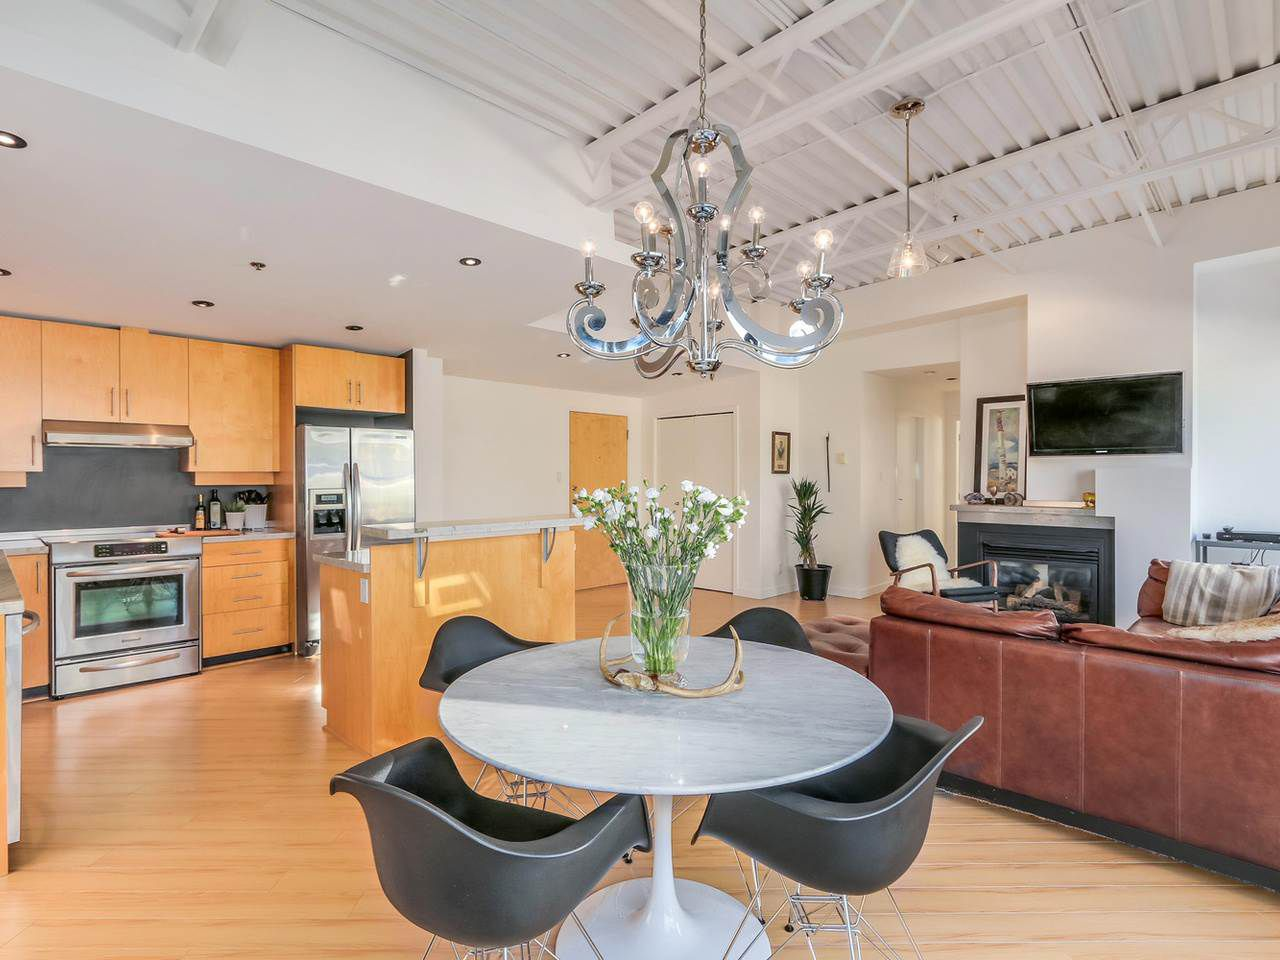 Main Photo: 511 549 COLUMBIA STREET in New Westminster: Downtown NW Condo for sale : MLS®# R2129468